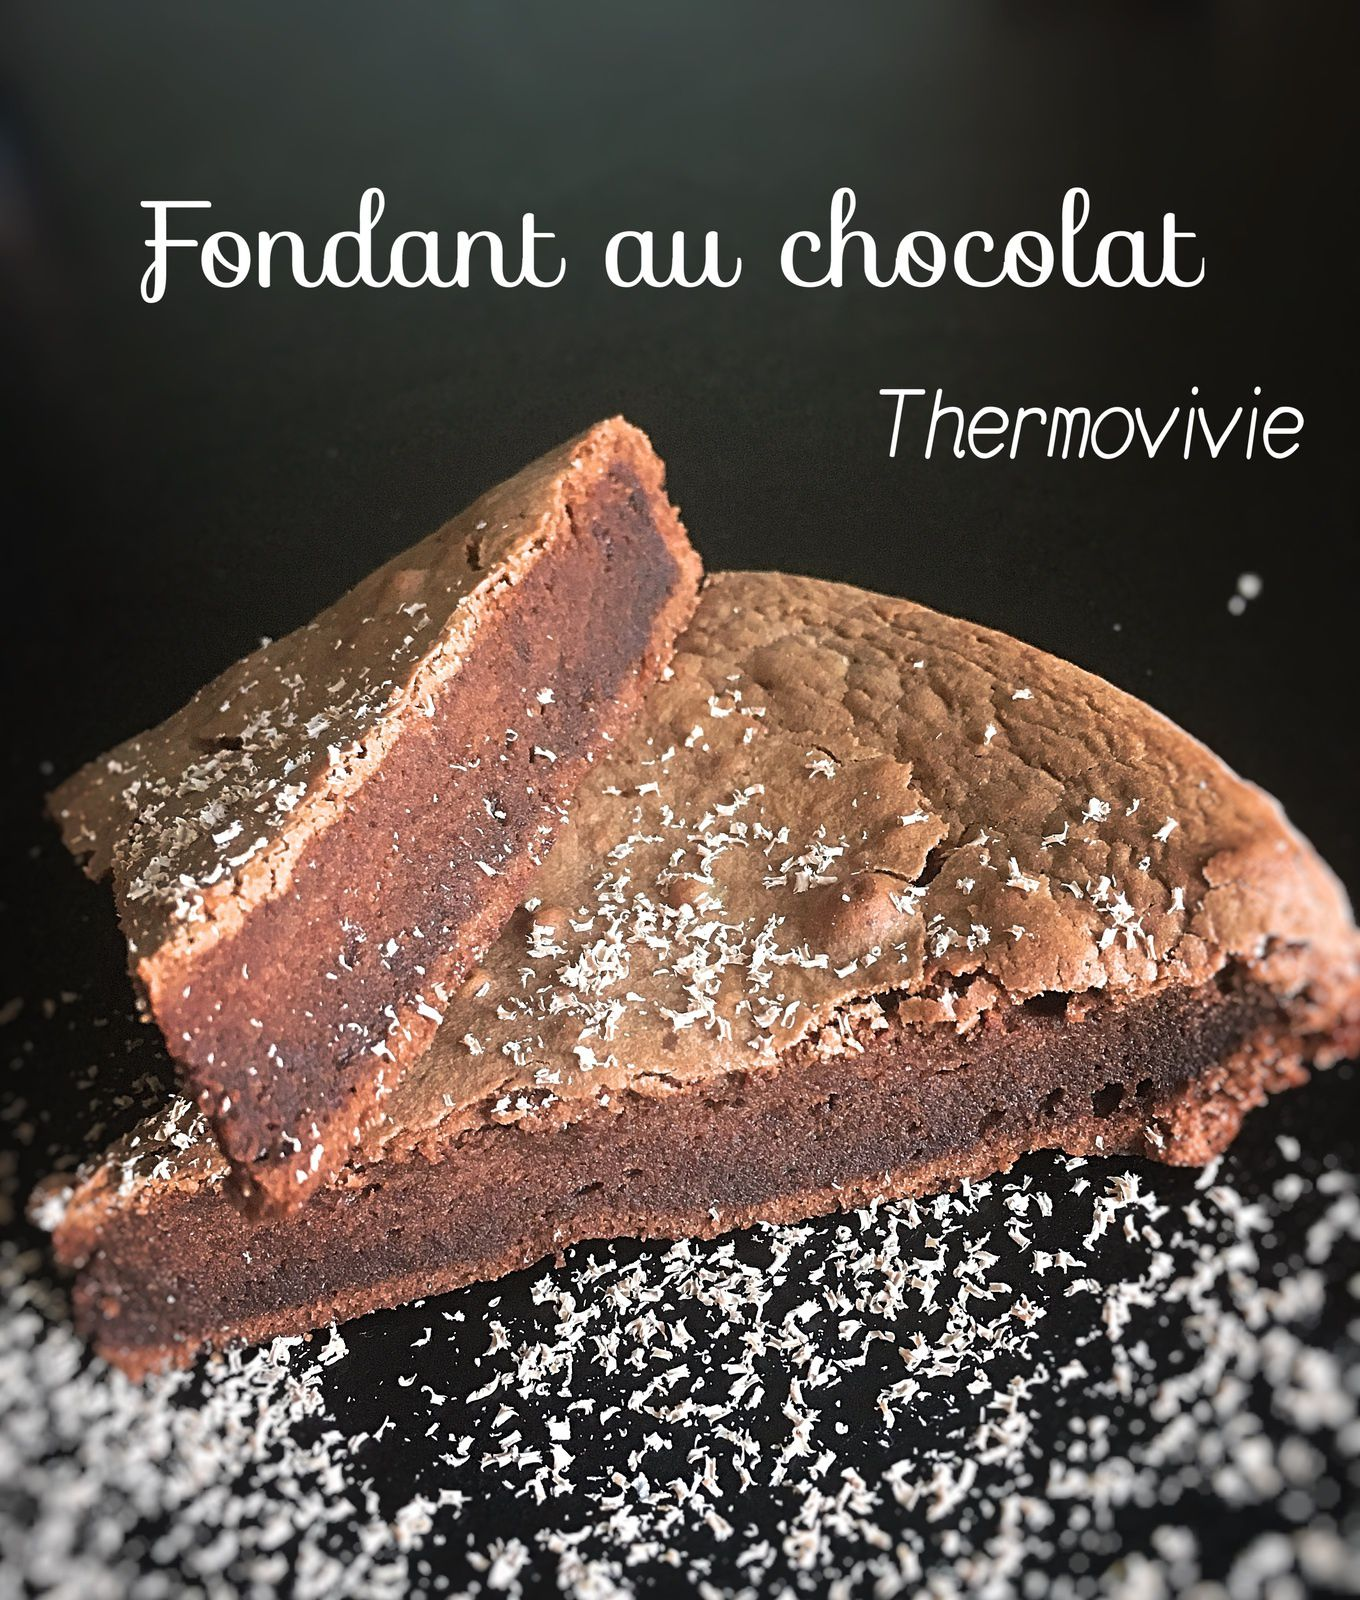 fondant au chocolat au thermomix recette de cyril lignac. Black Bedroom Furniture Sets. Home Design Ideas